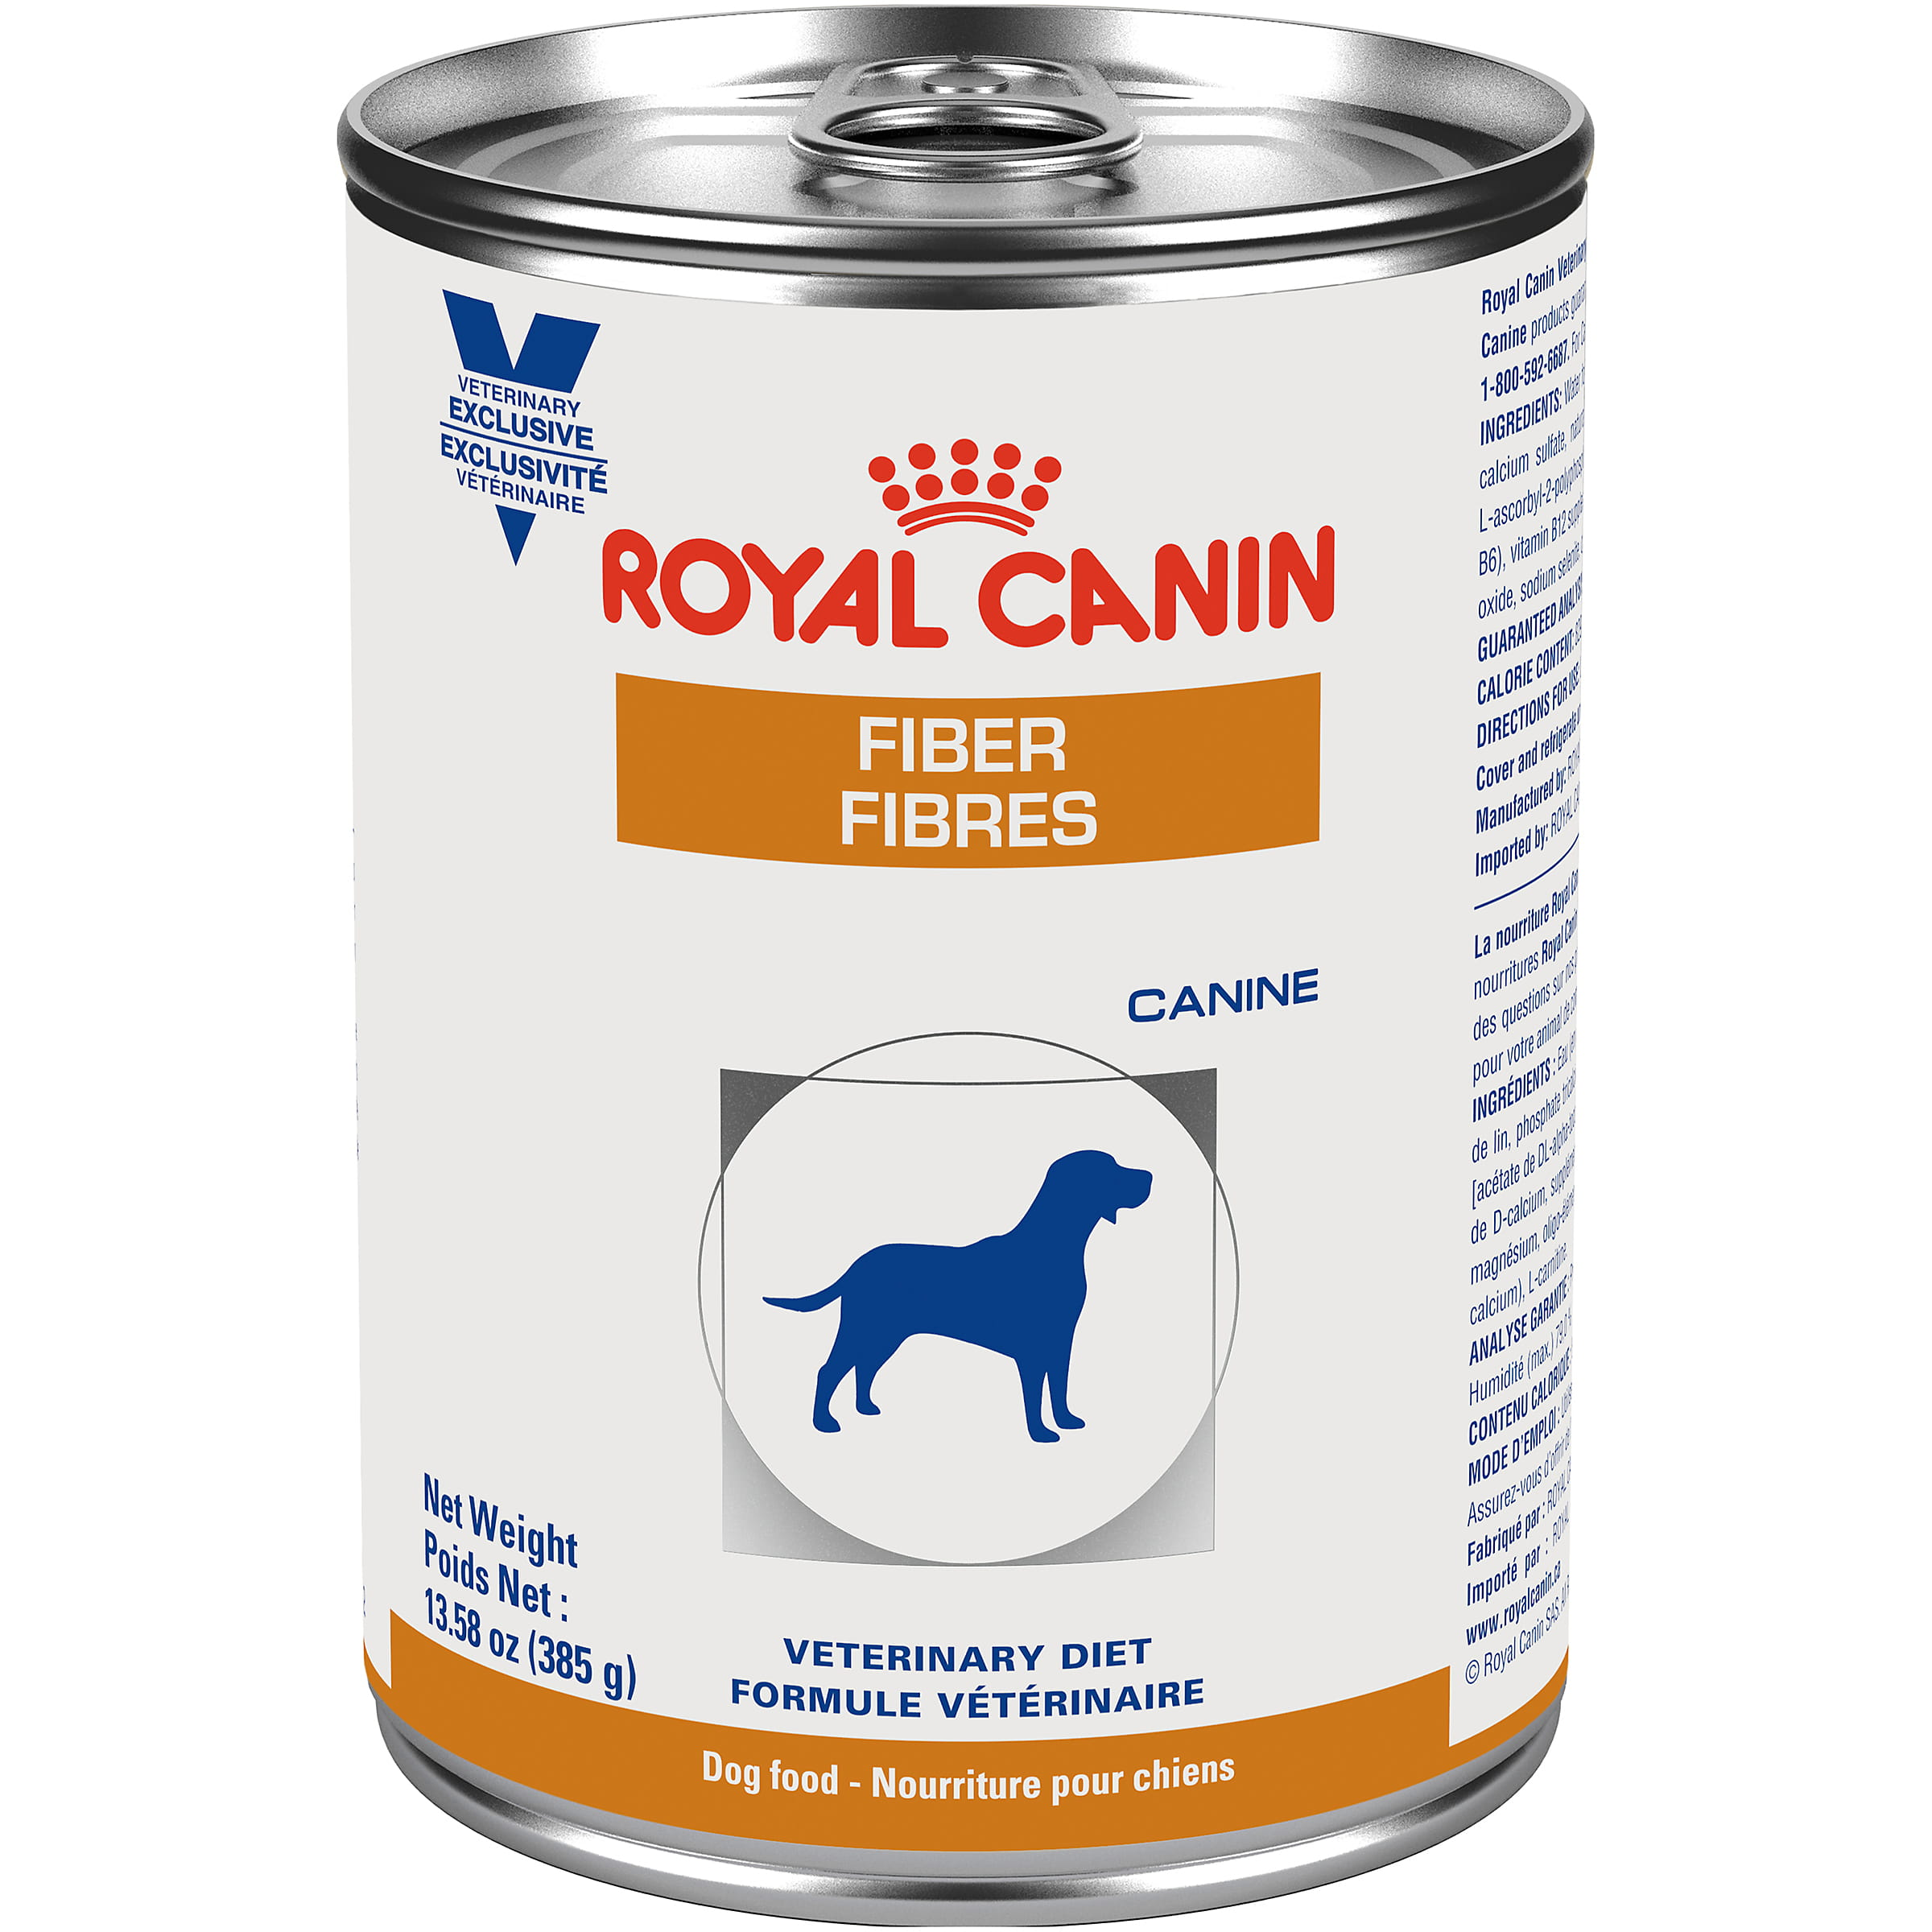 Canine Fiber Canned Dog Food